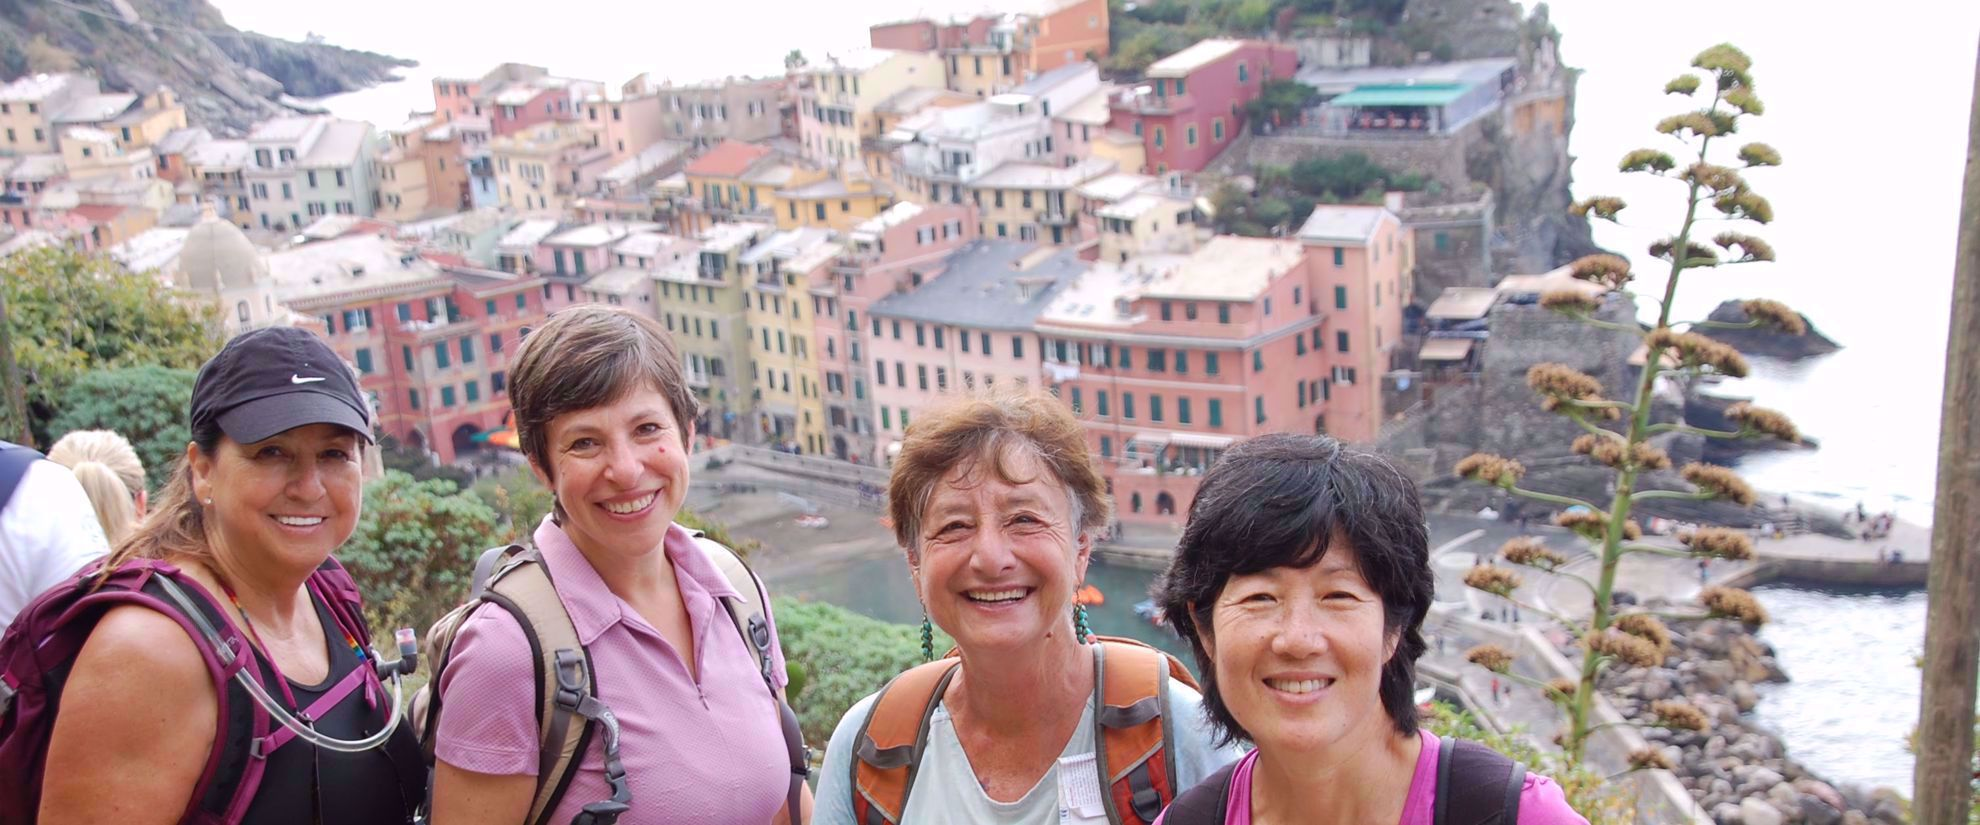 women smiling on group trip to cinque terre and the italian riviera